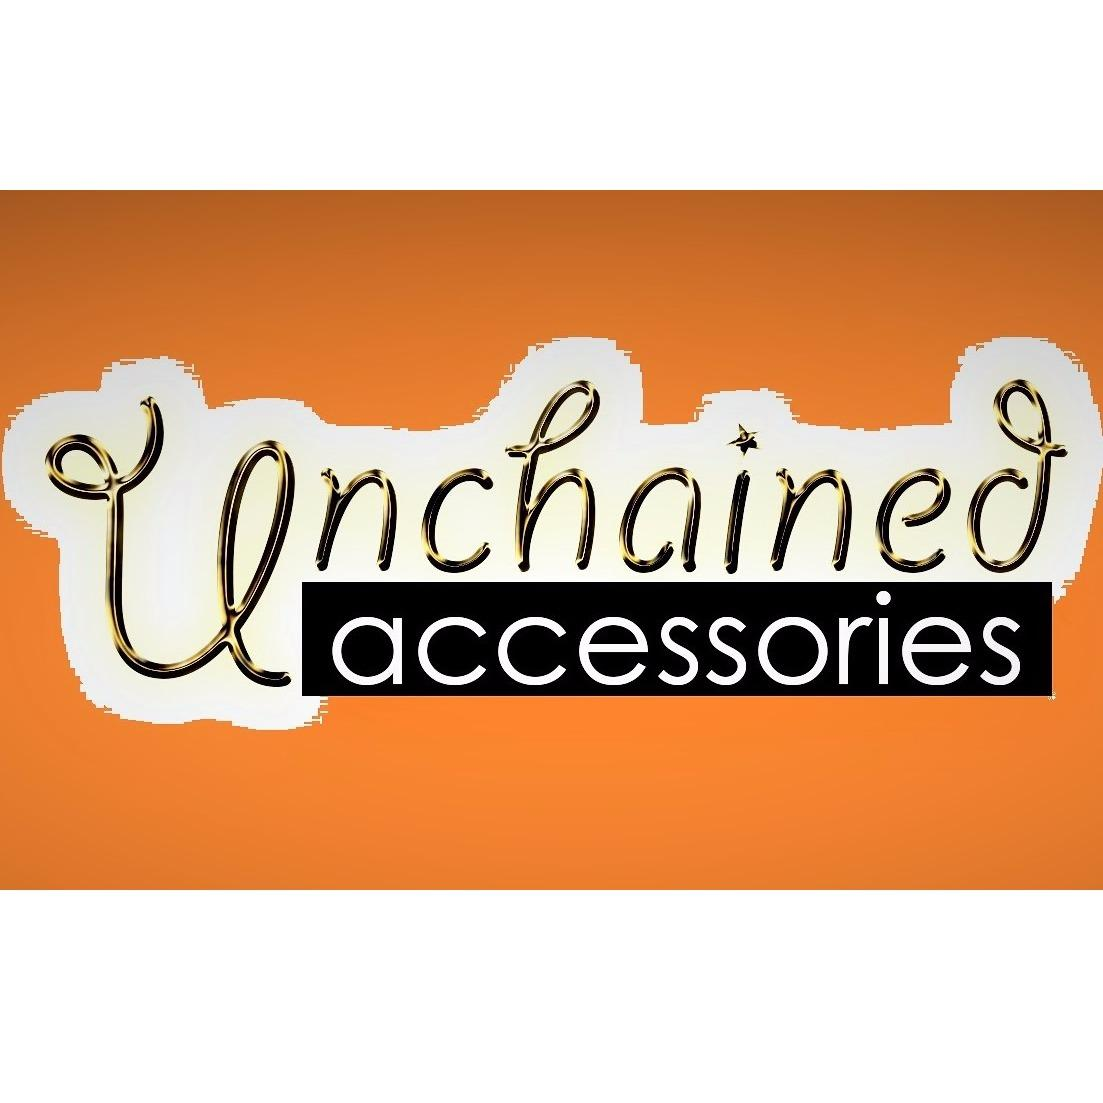 Unchained Accessories